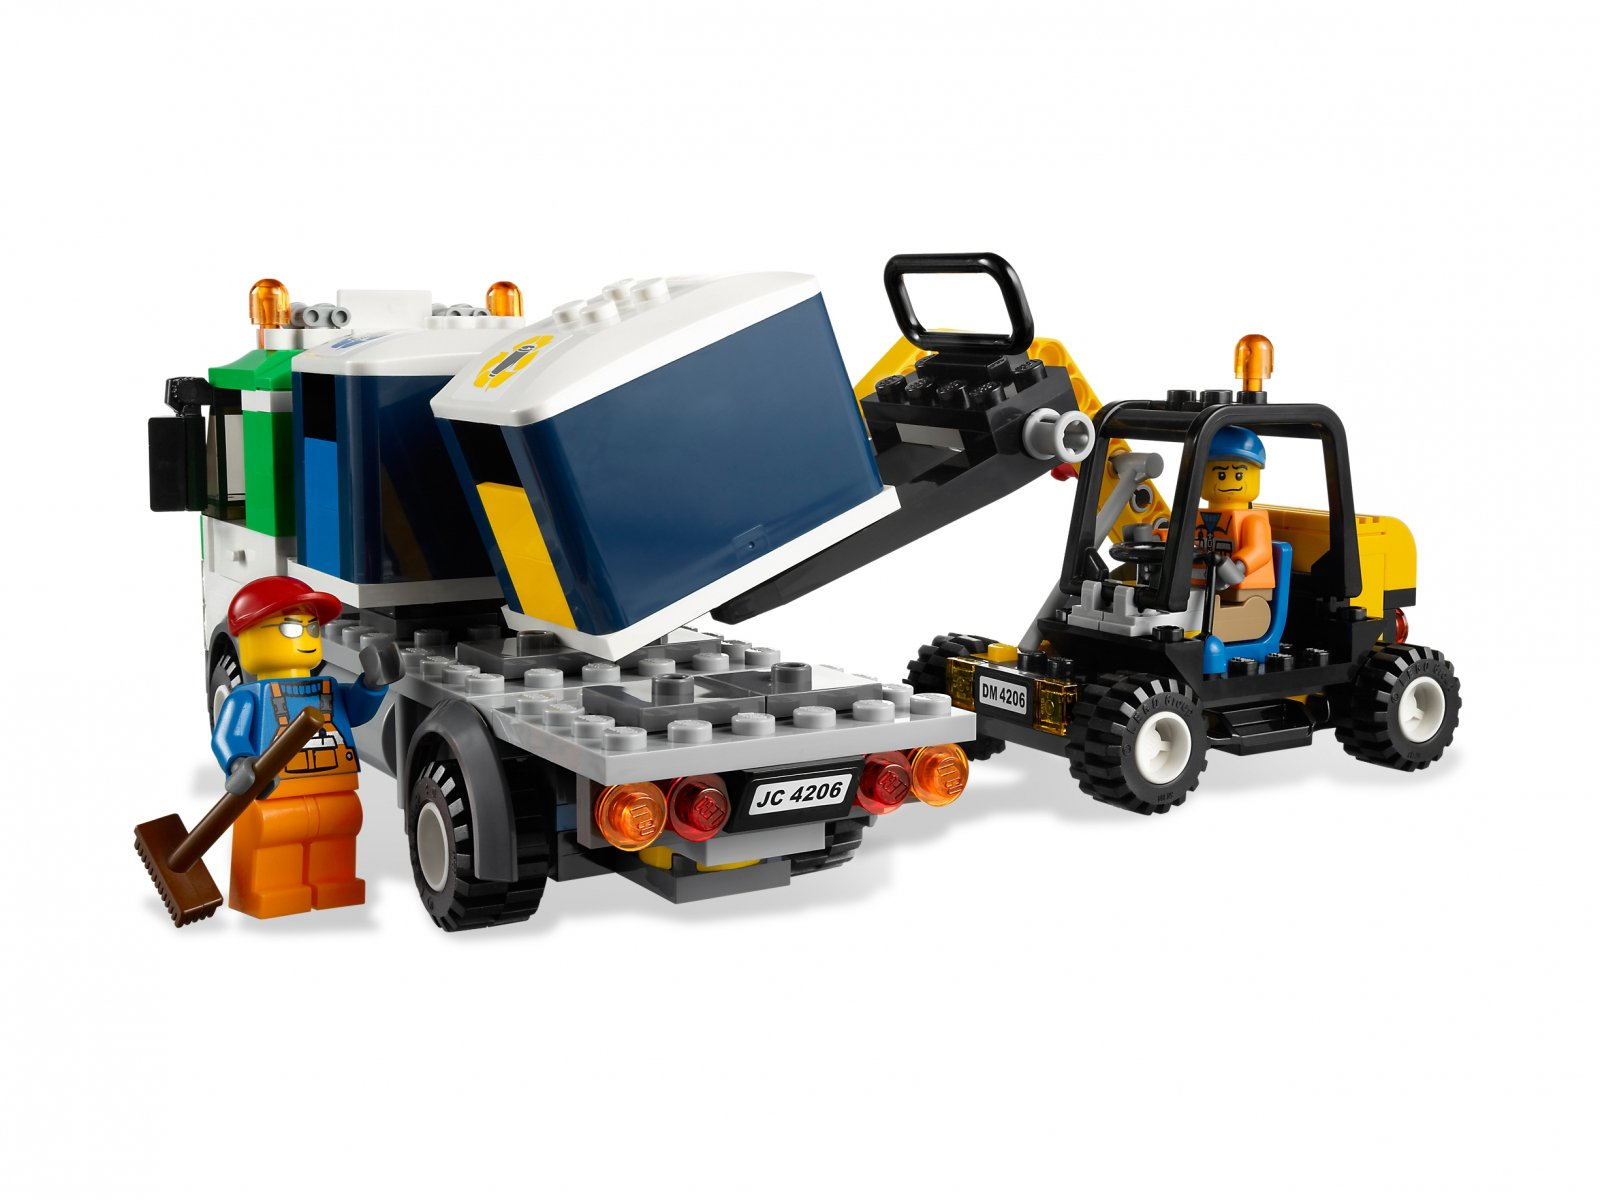 LEGO City 4206 Recycling Truck